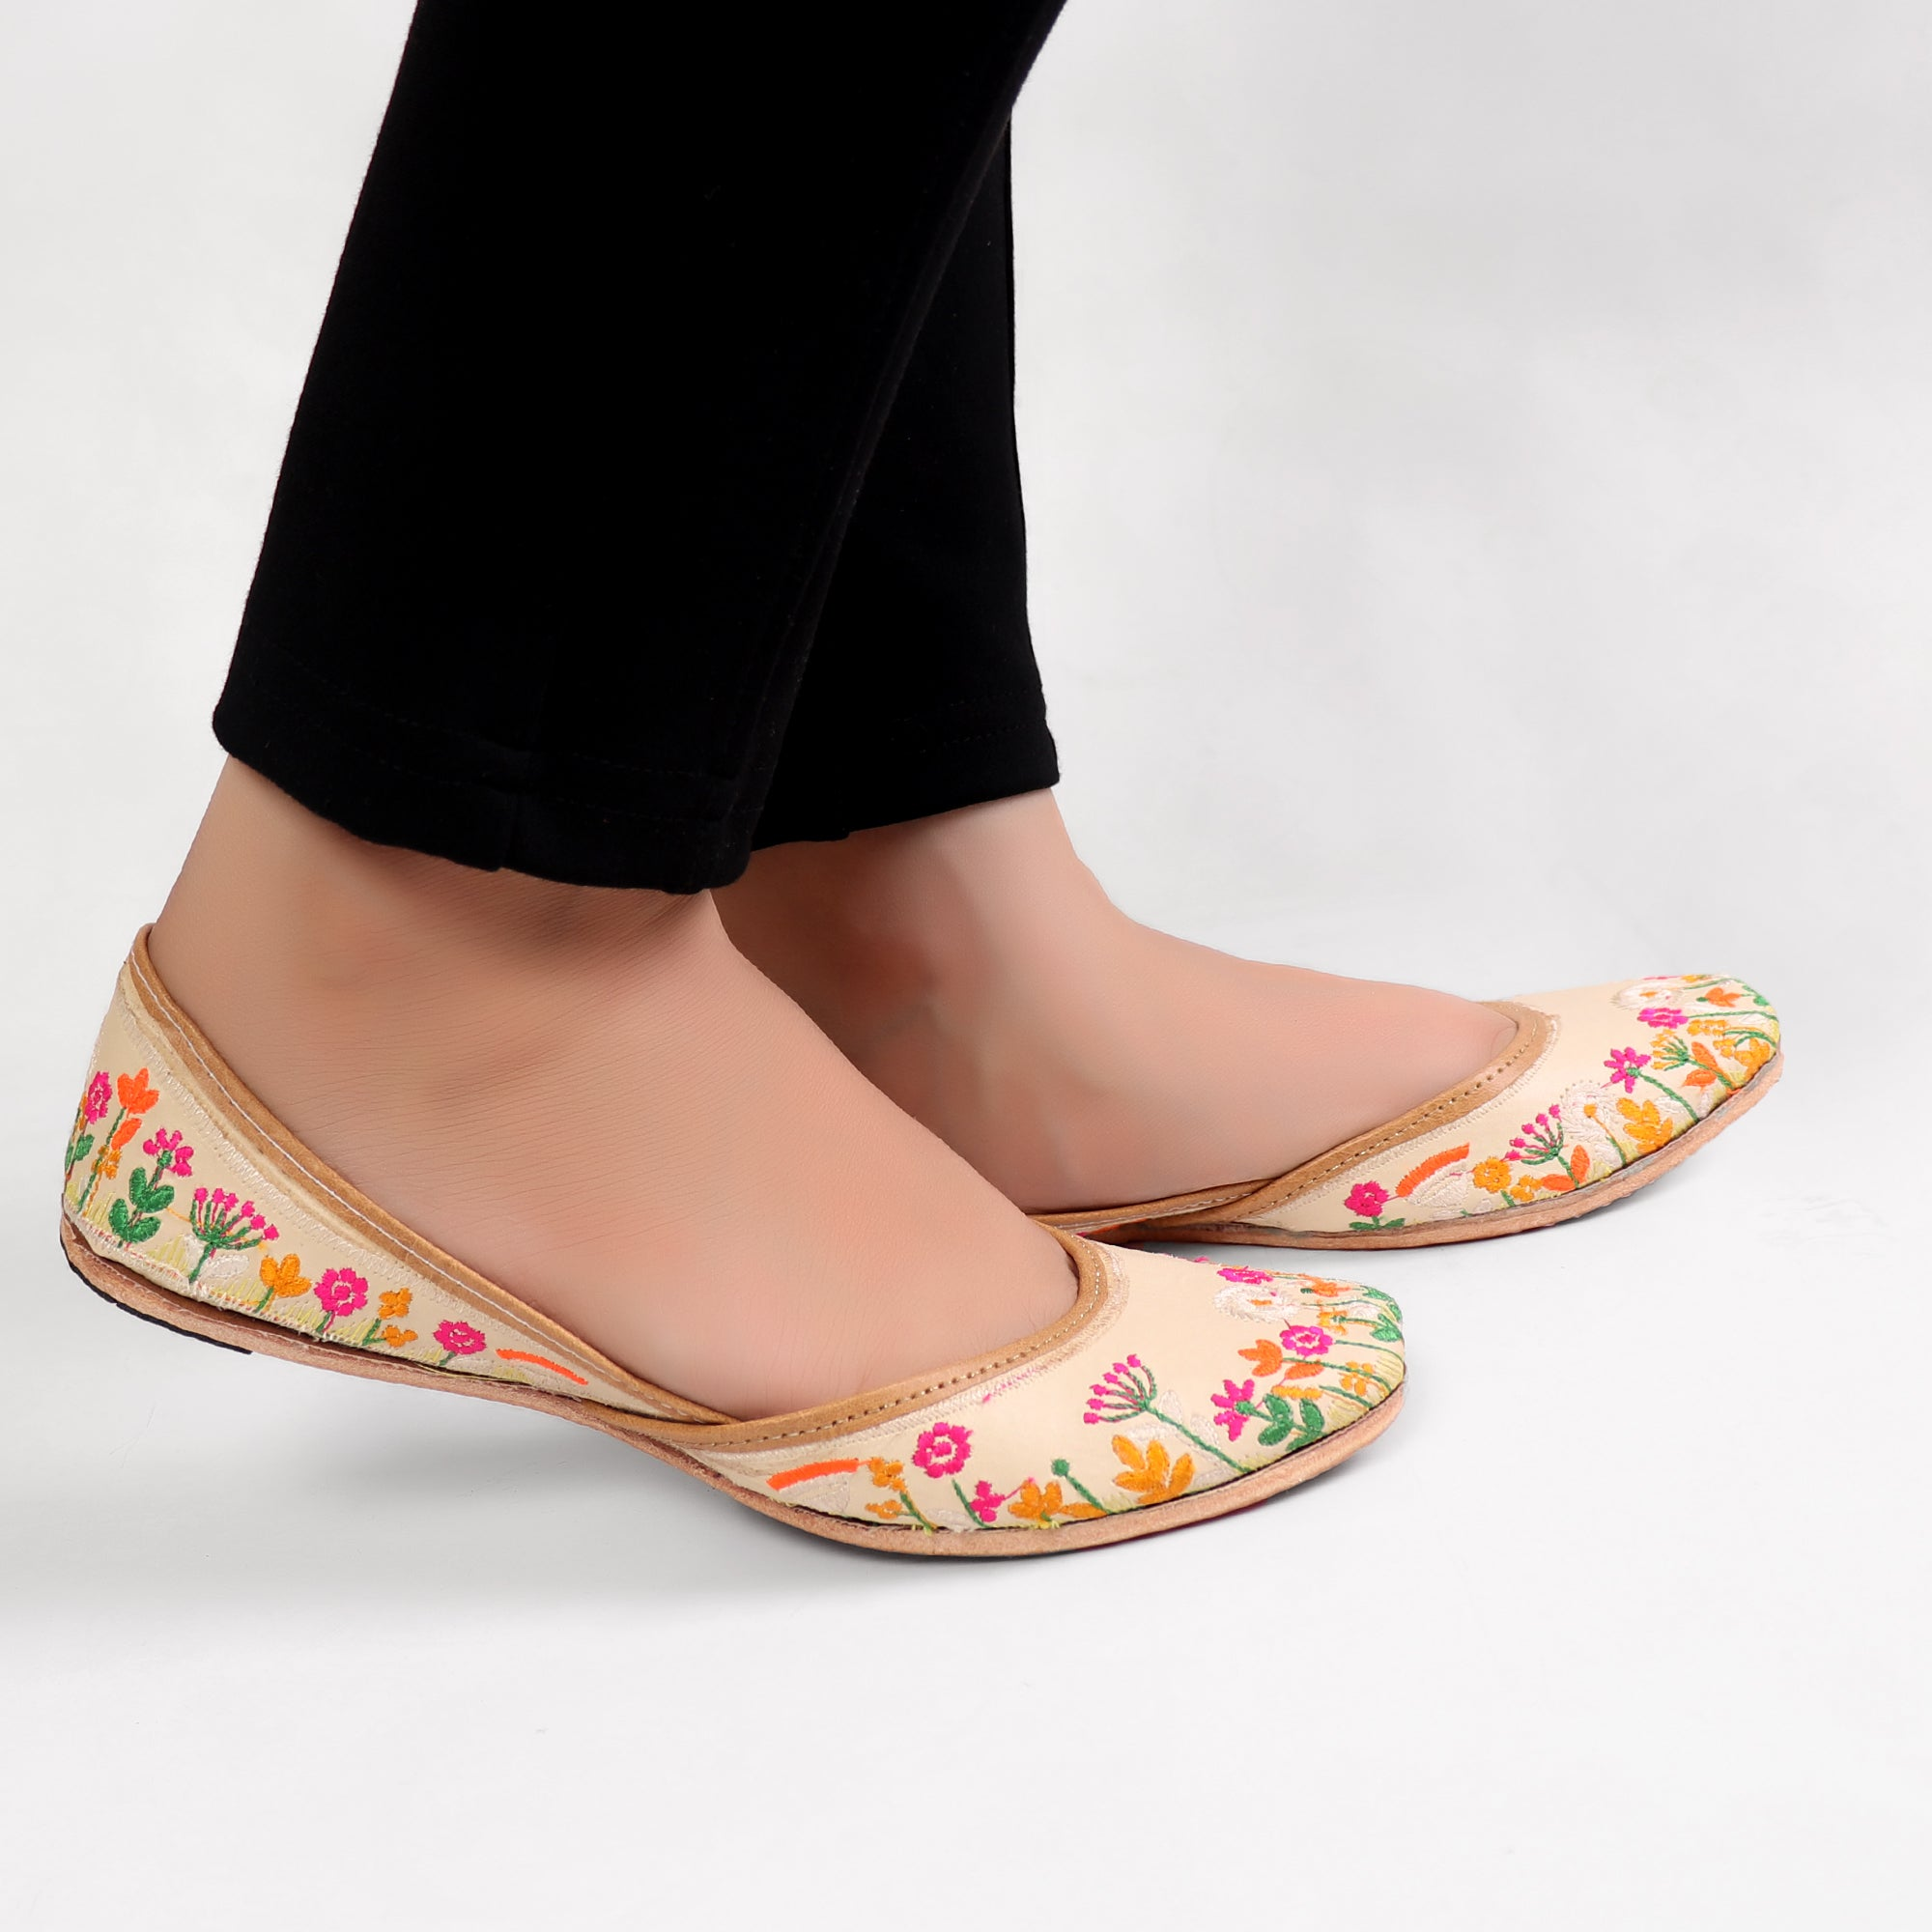 Foot Wear,Flowers for you Nagra Jutti - Cippele Multi Store